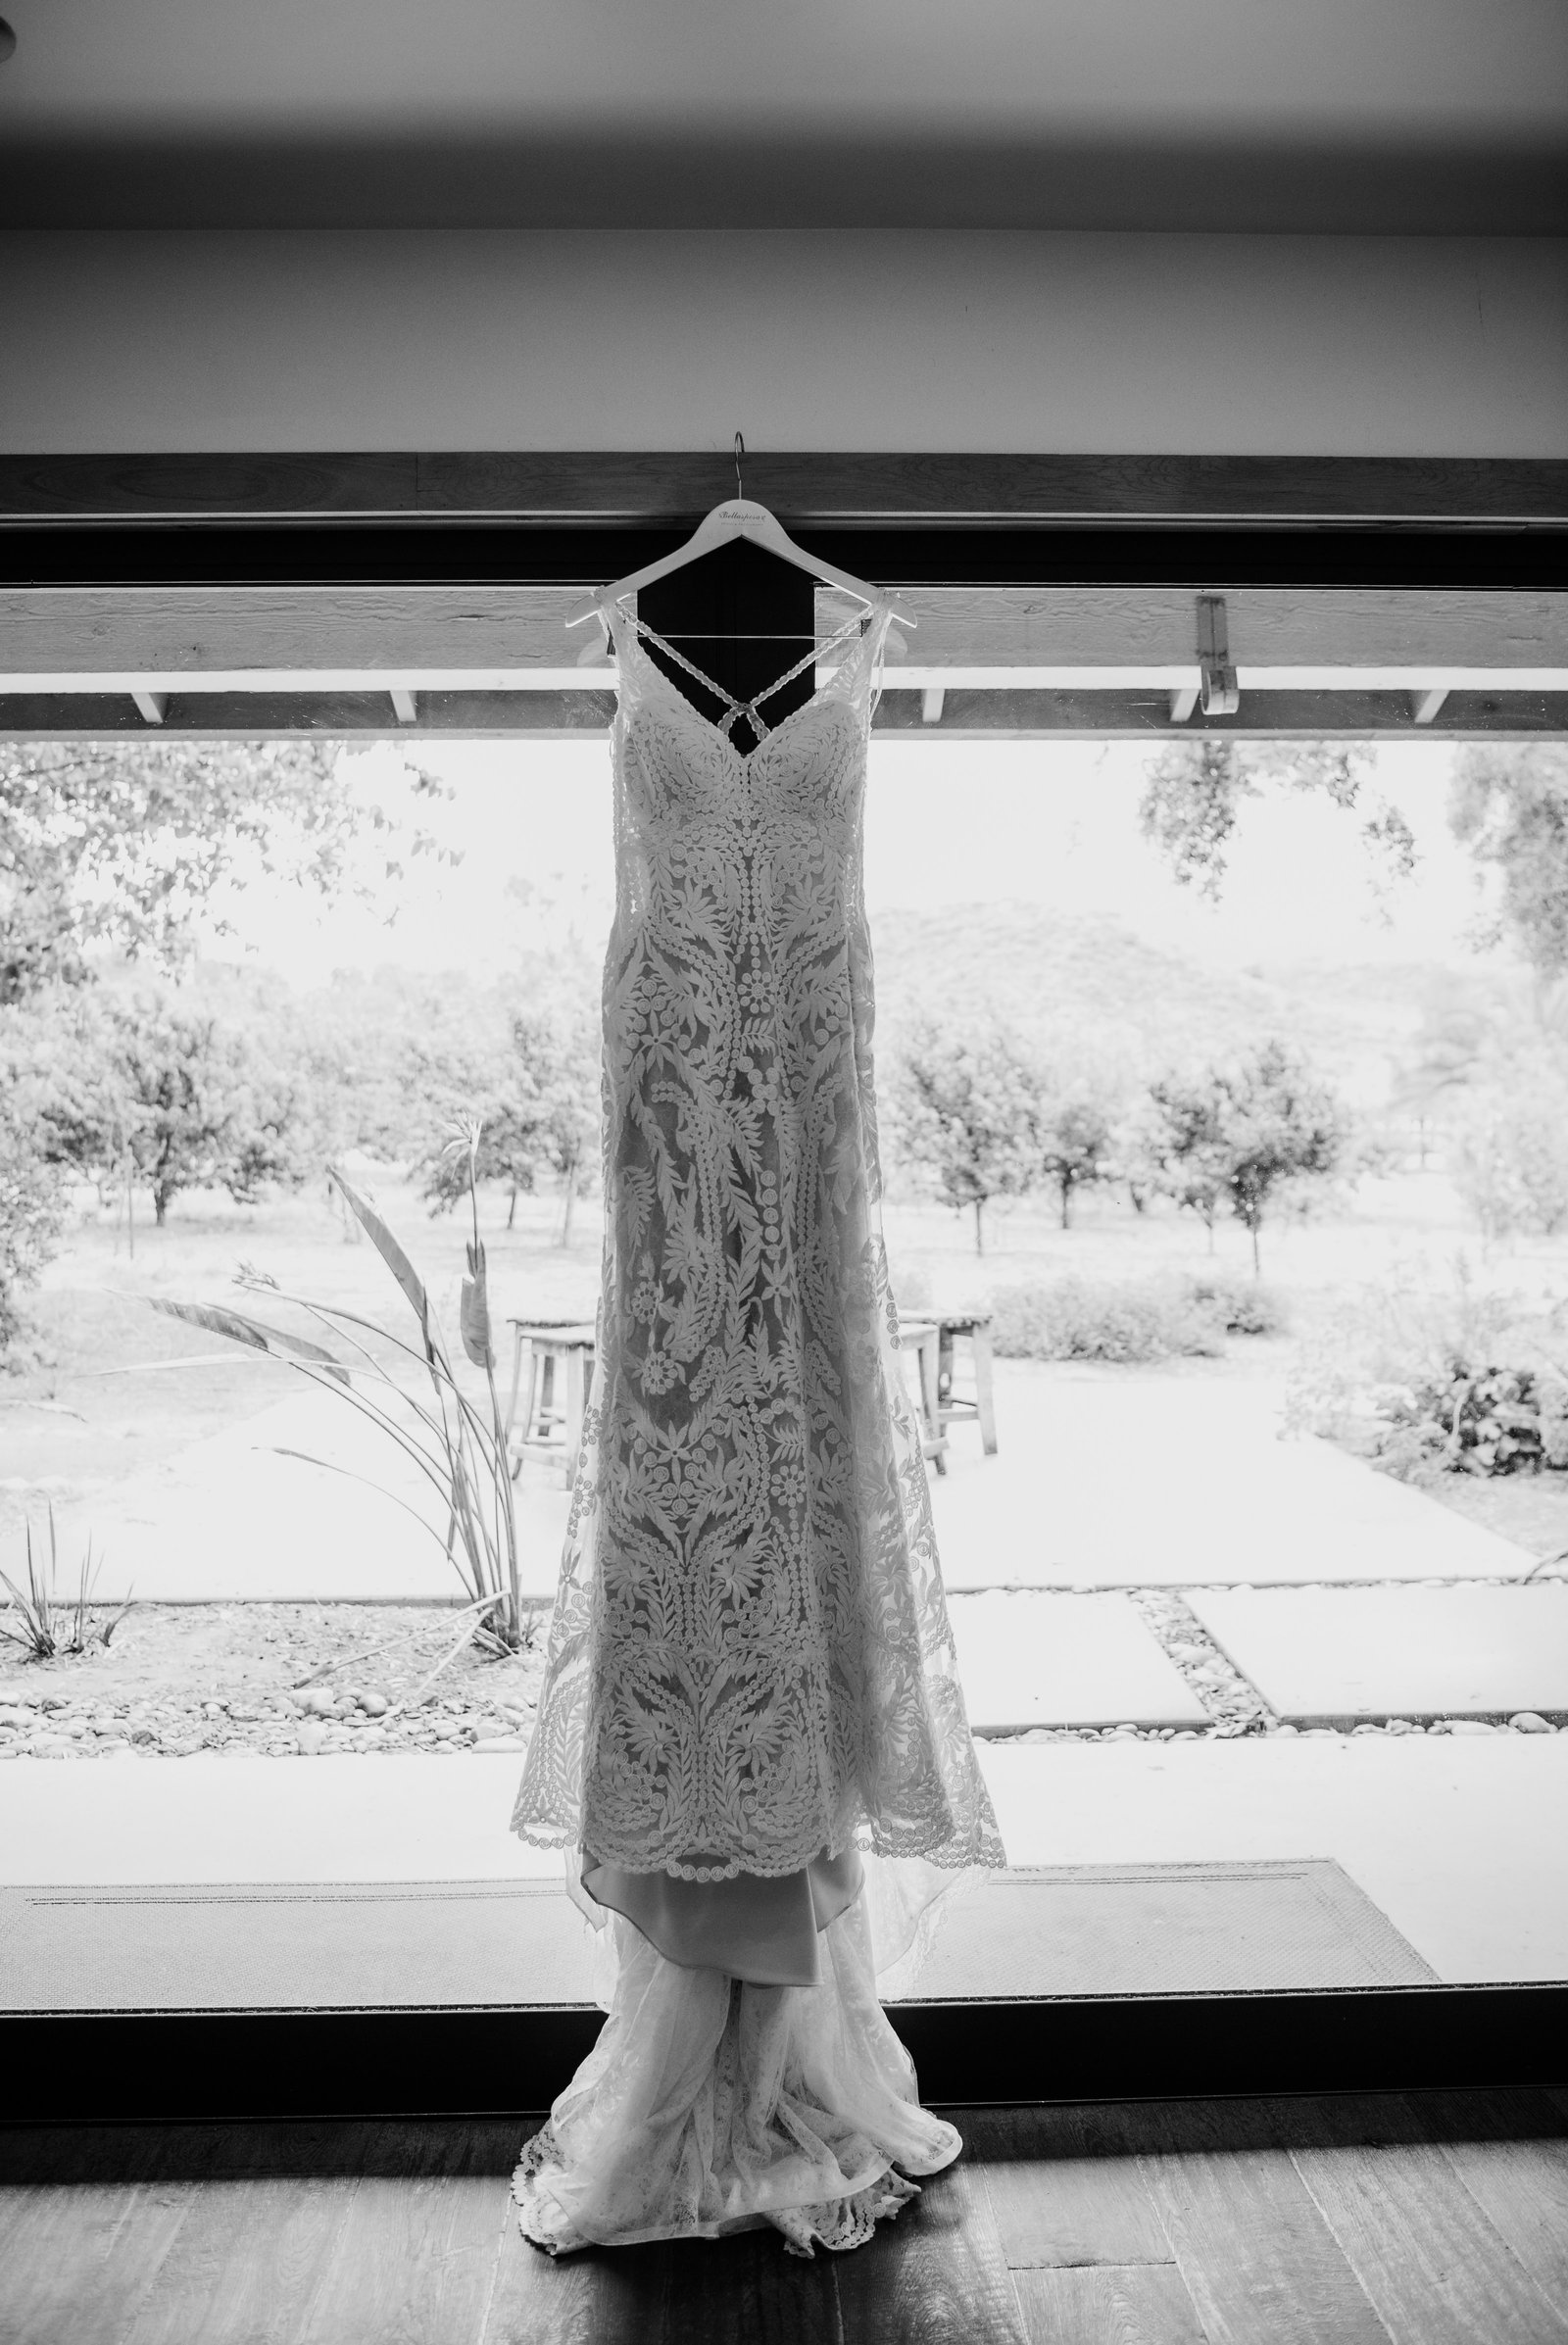 Bride_GalwayDowns Wedding051